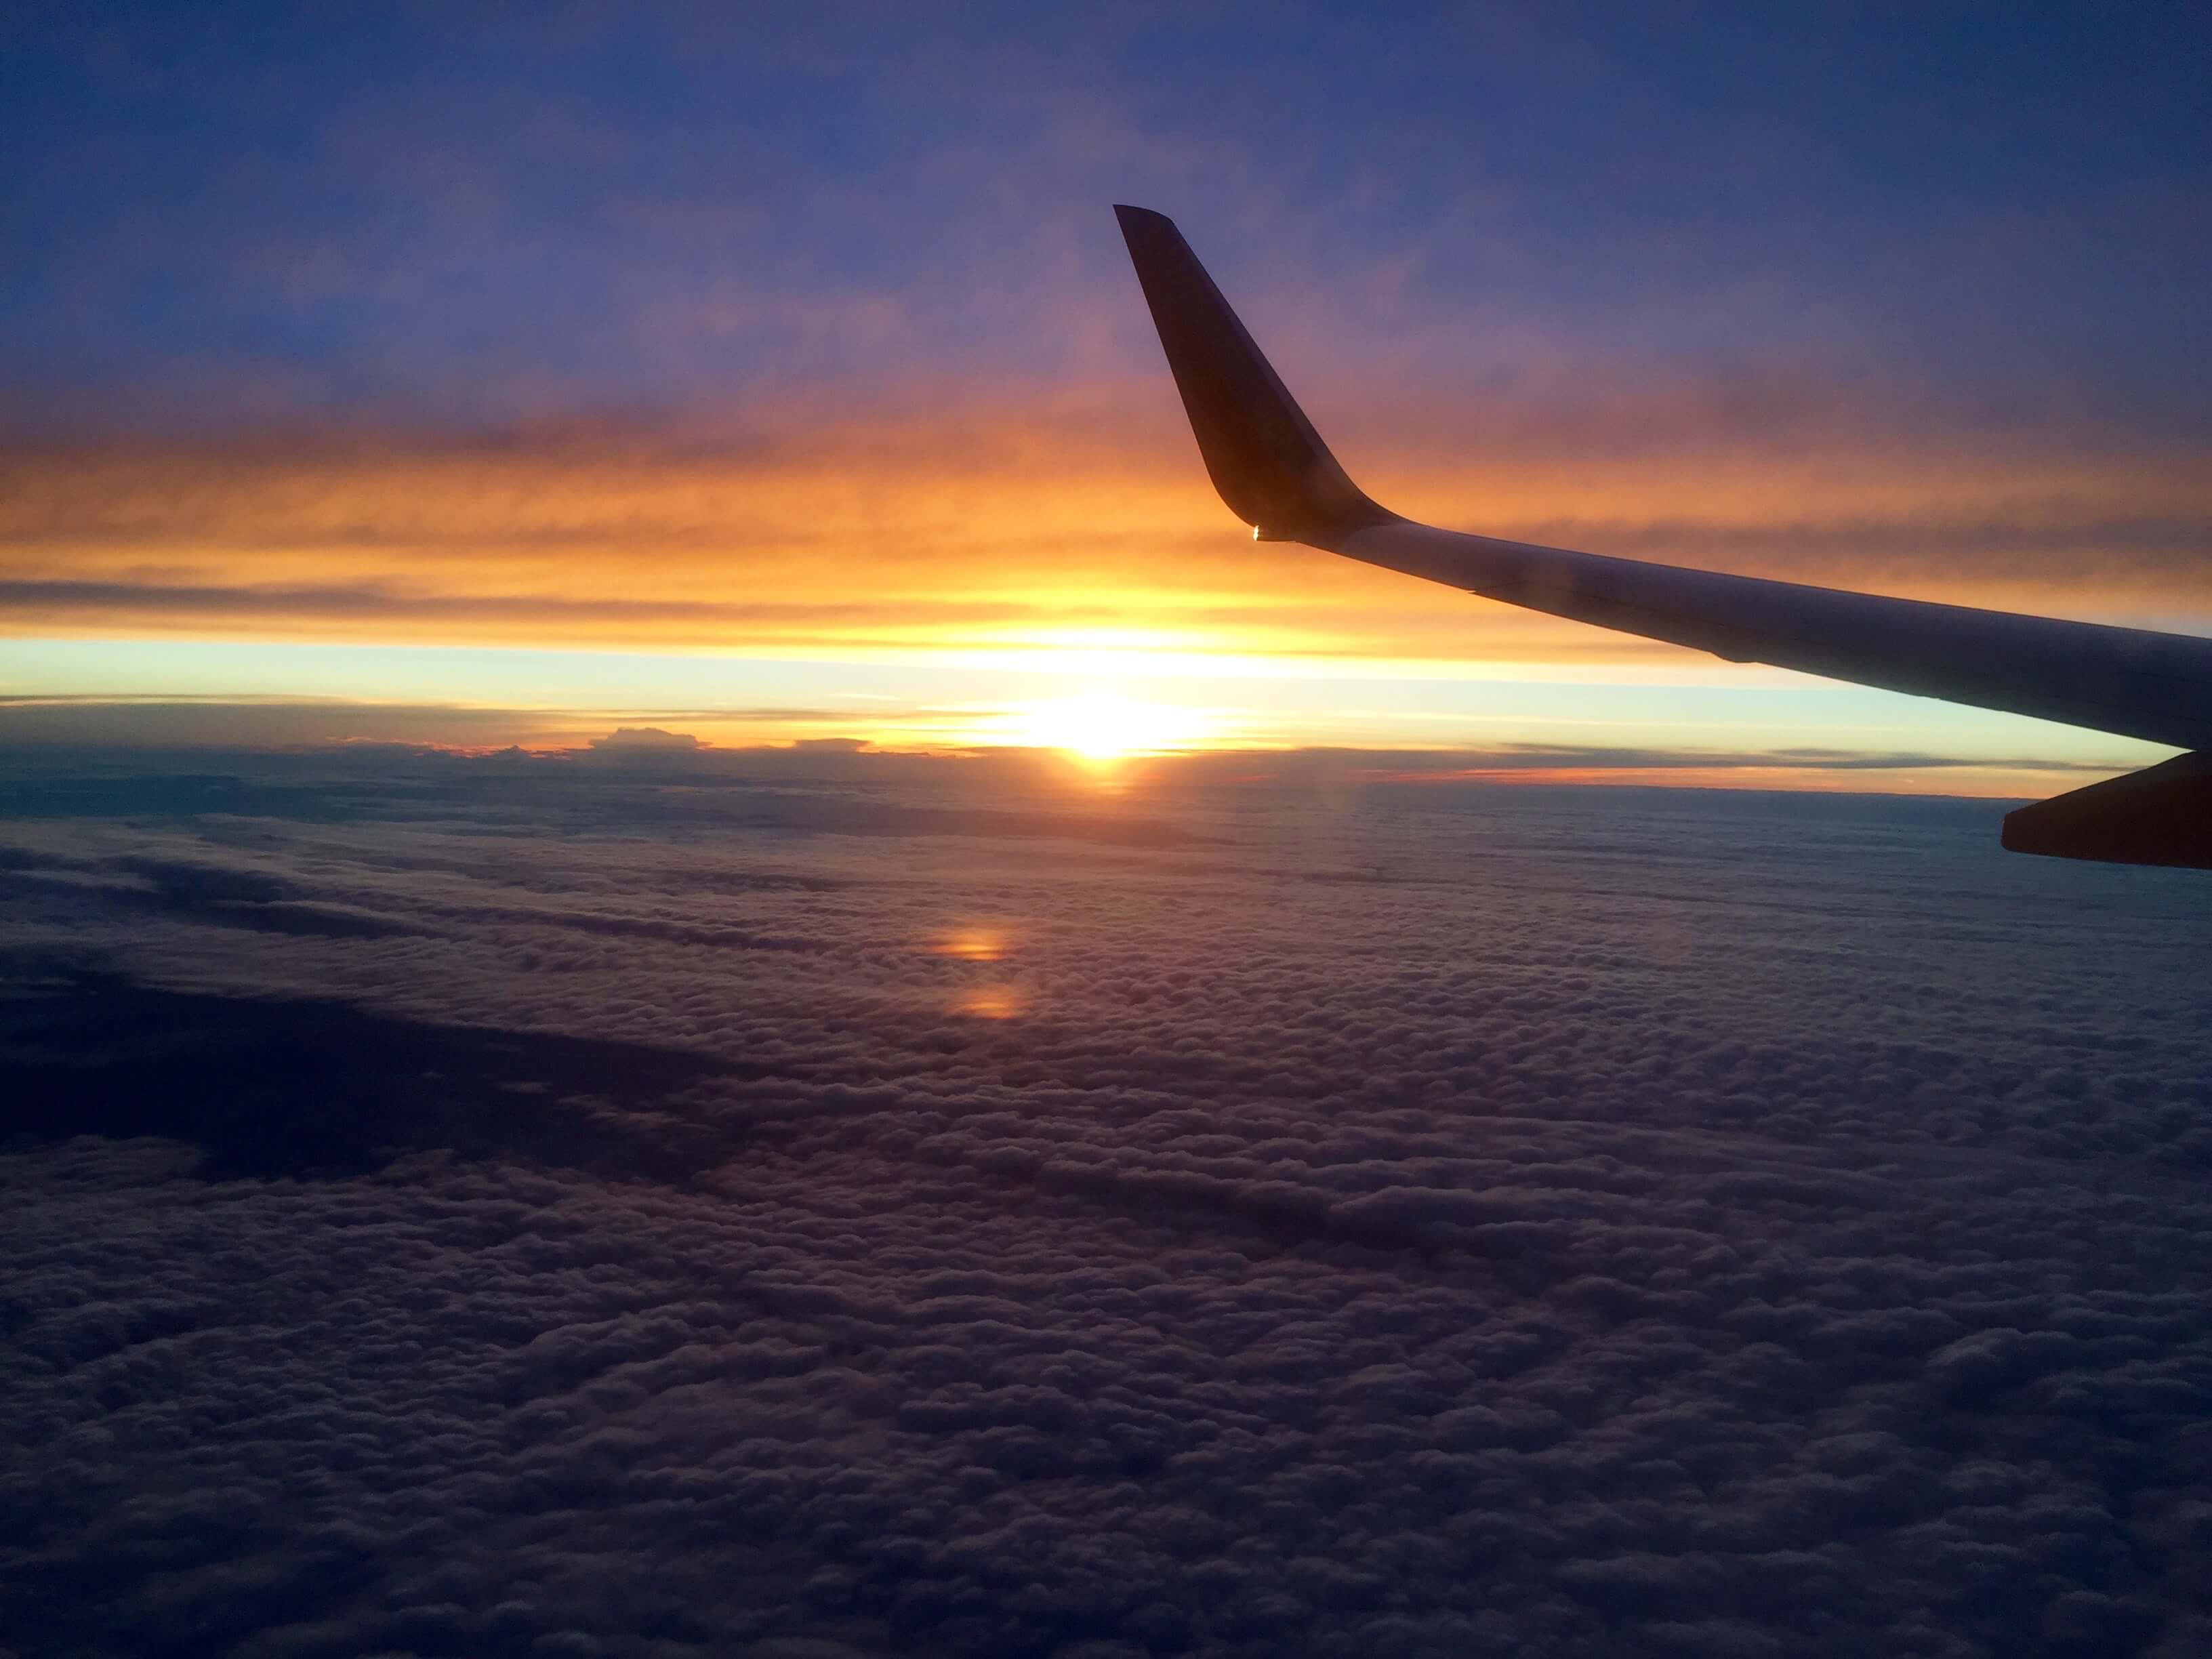 blog-top-5-adventures-before-25-sunset-on-a-plane